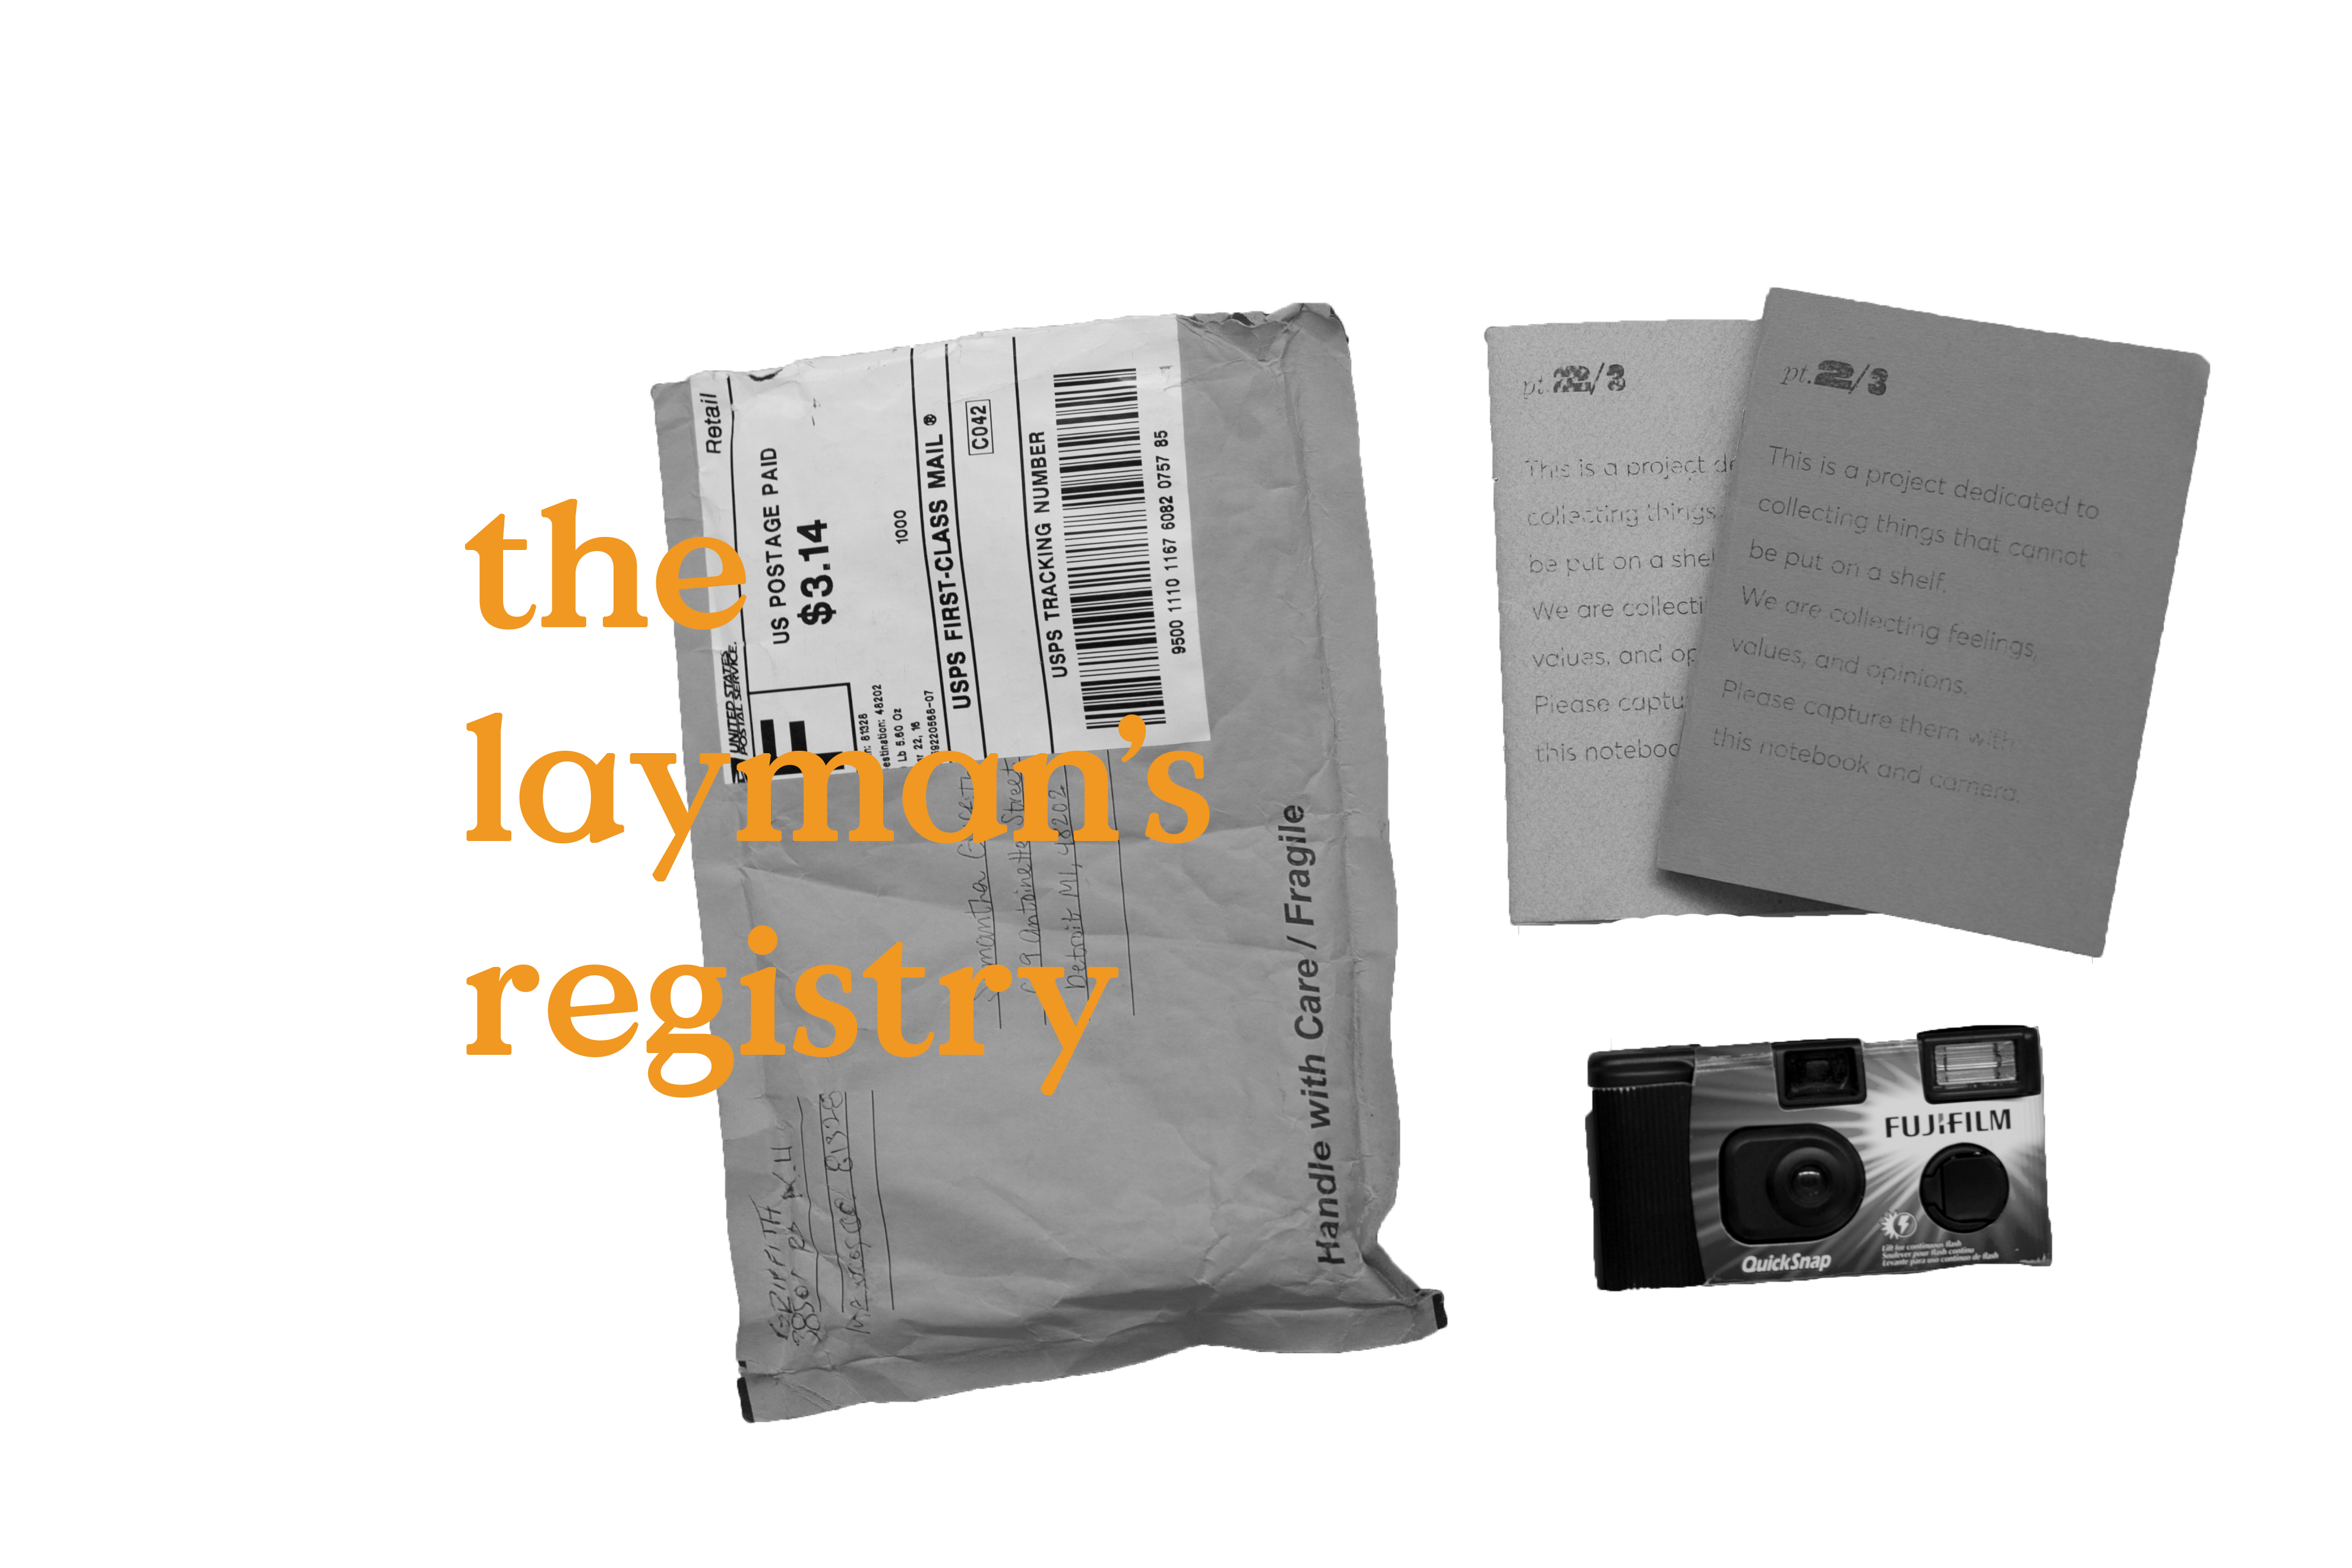 The Layman's Registry